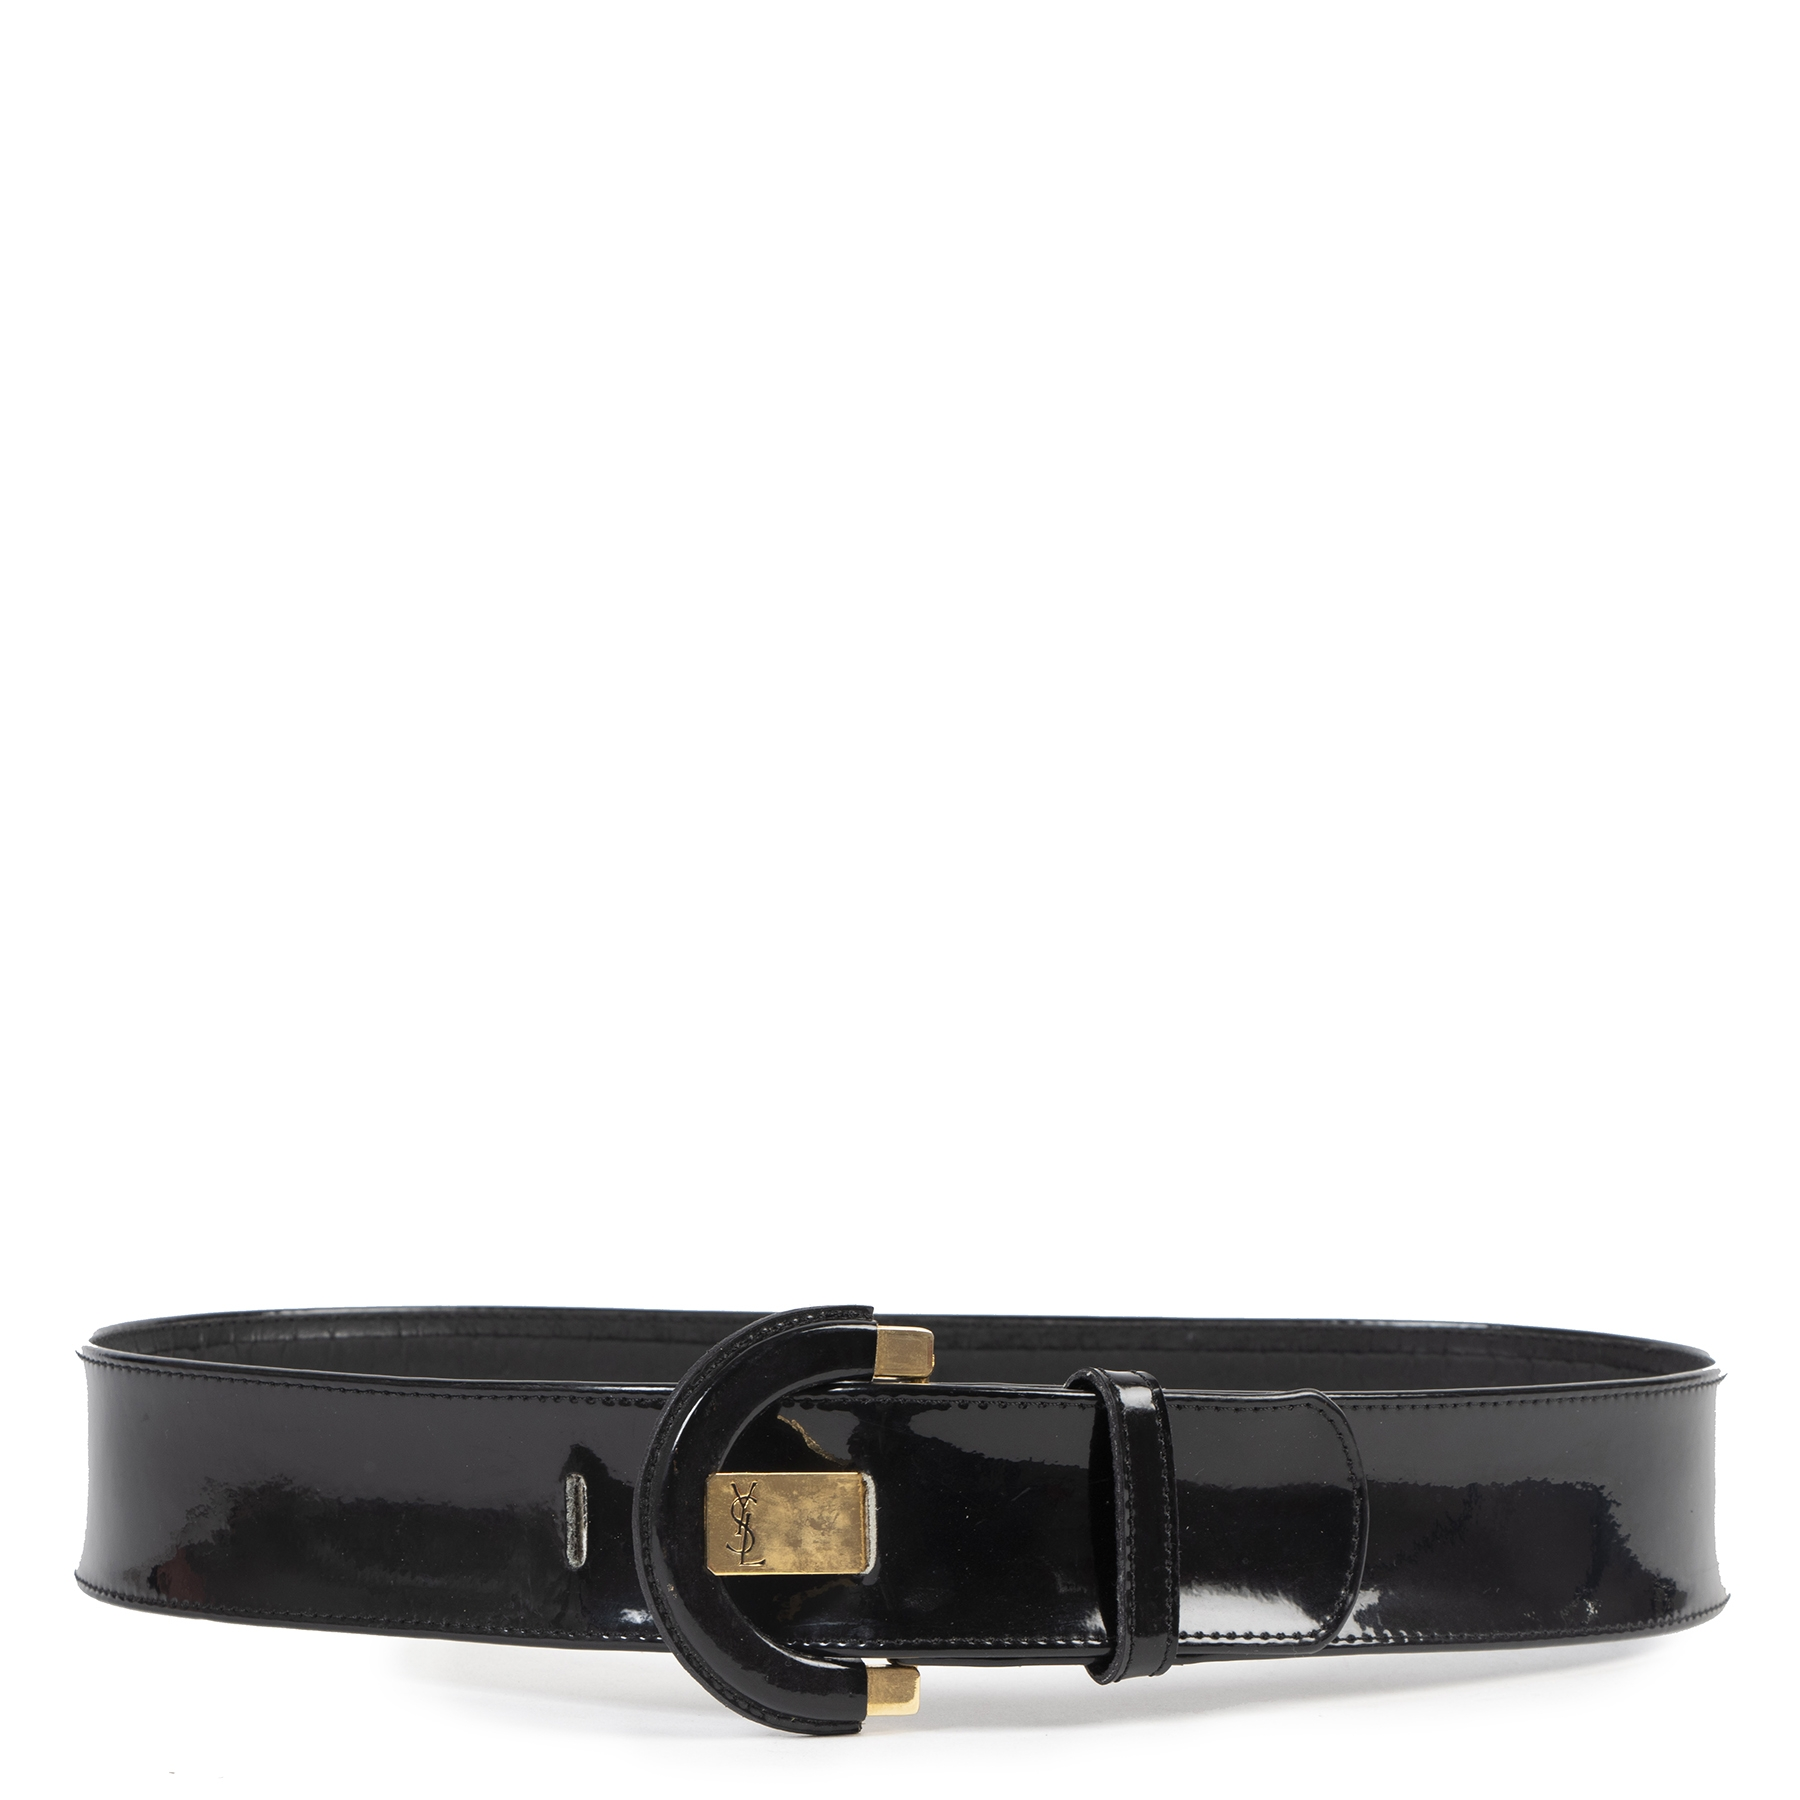 Authentic secondhand Yves Saint Laurent Black Patent Leather Belt - Size 75 luxury vintage webshop fashion safe secure online shopping